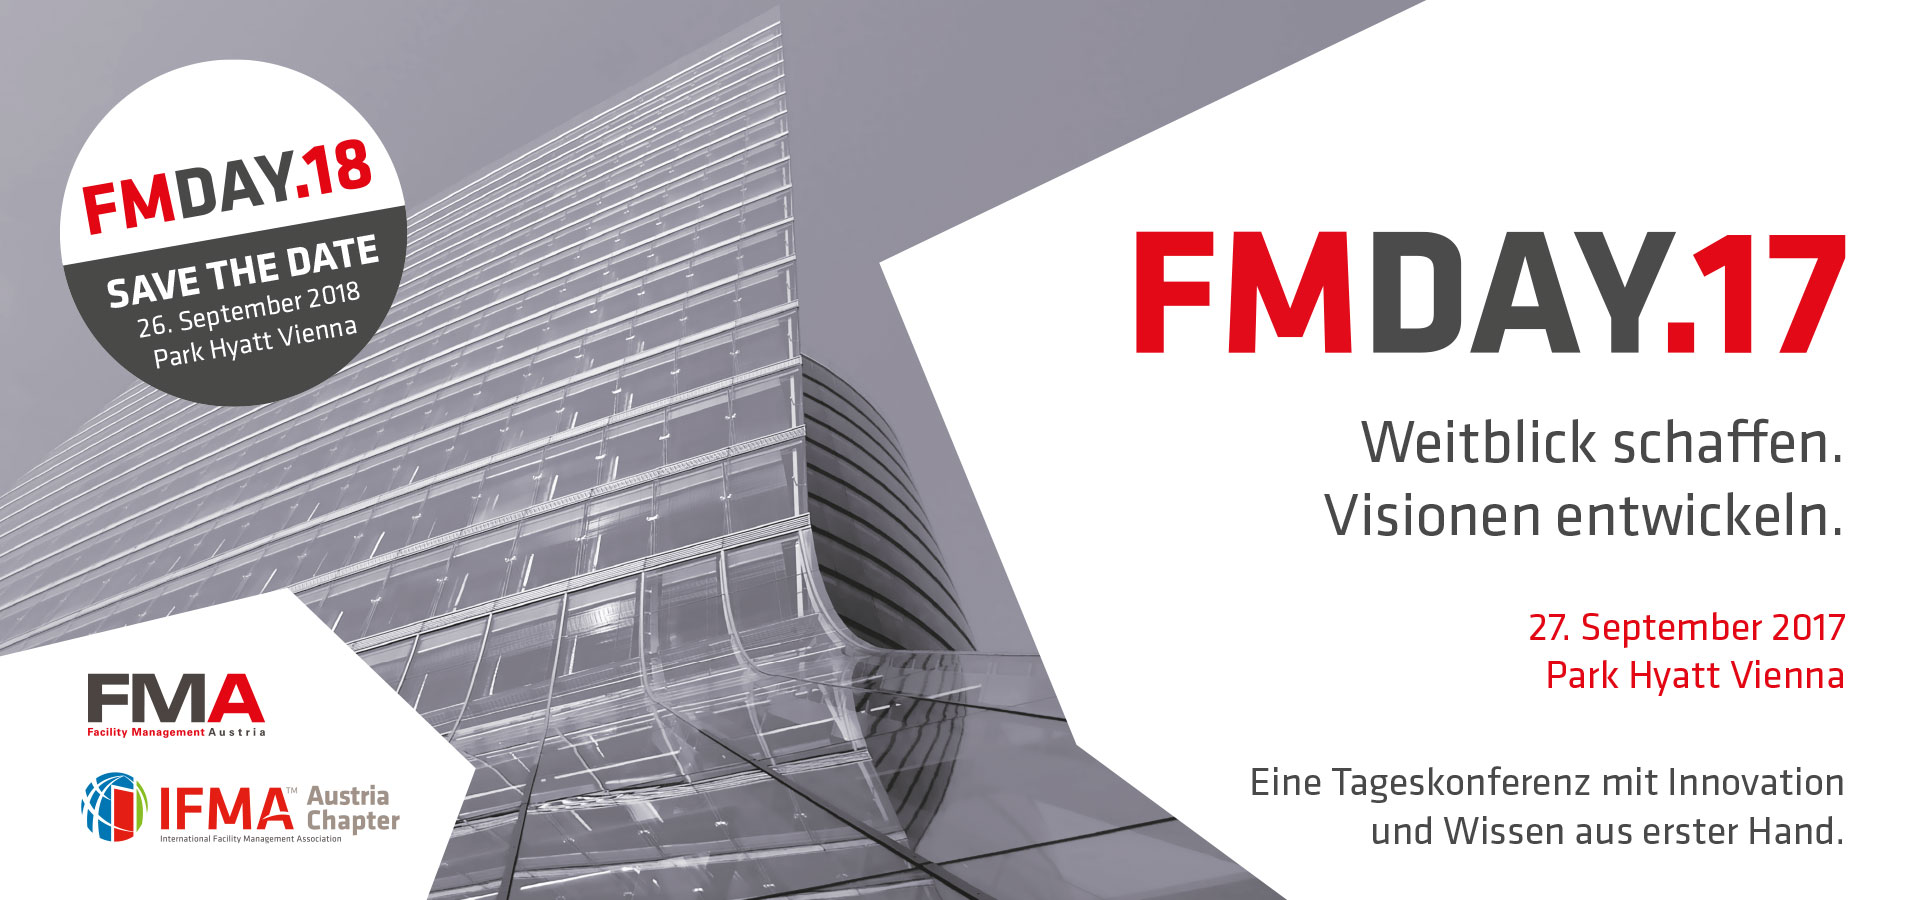 FM-Day - Save the Date 26. September 2018 Park Hyatt Vienna